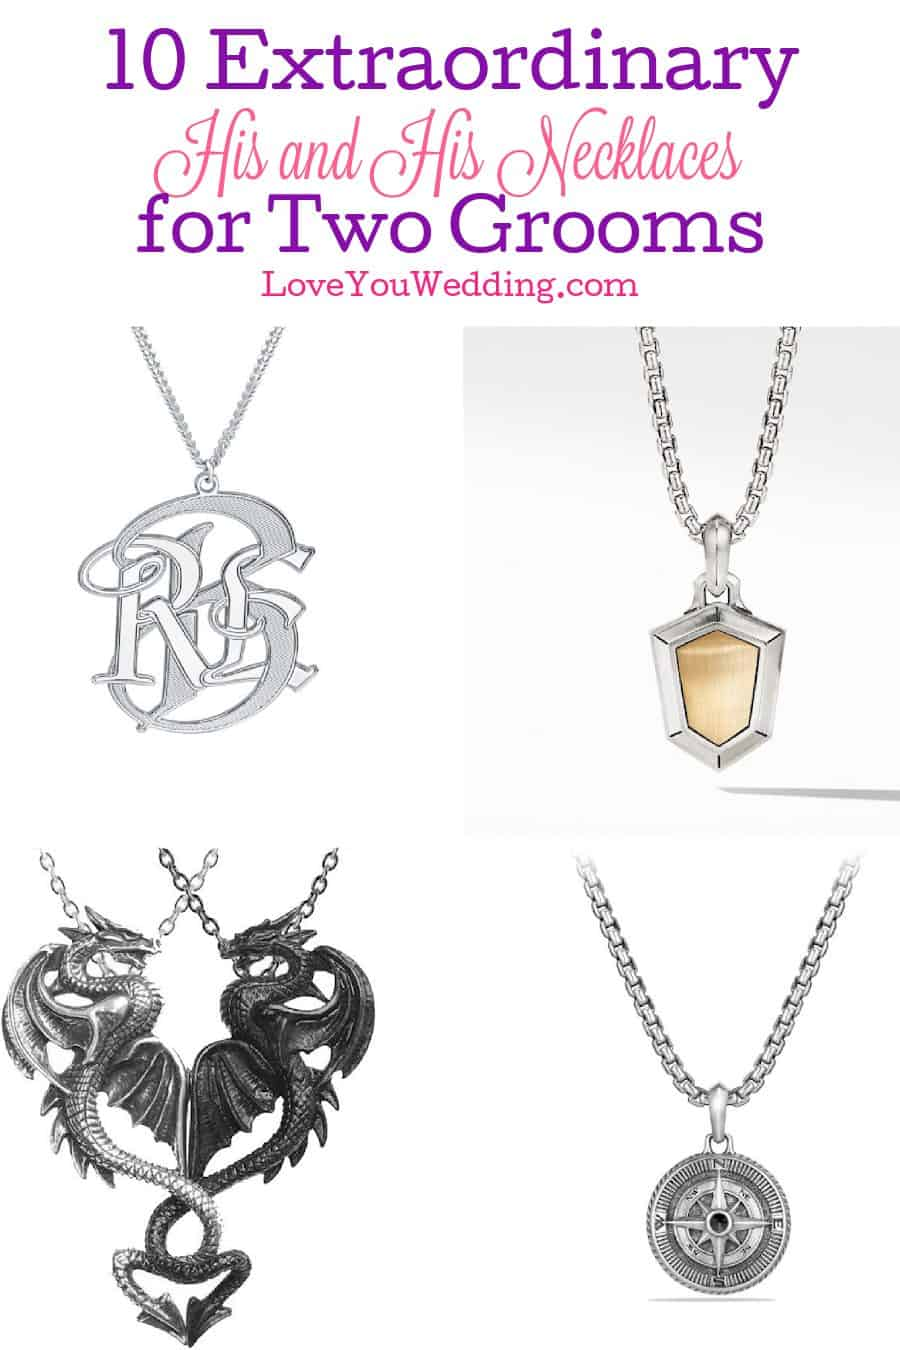 Looking for the perfect his and his necklaces to give each other, or maybe as a wedding gift for two grooms? Check out 10 we love!